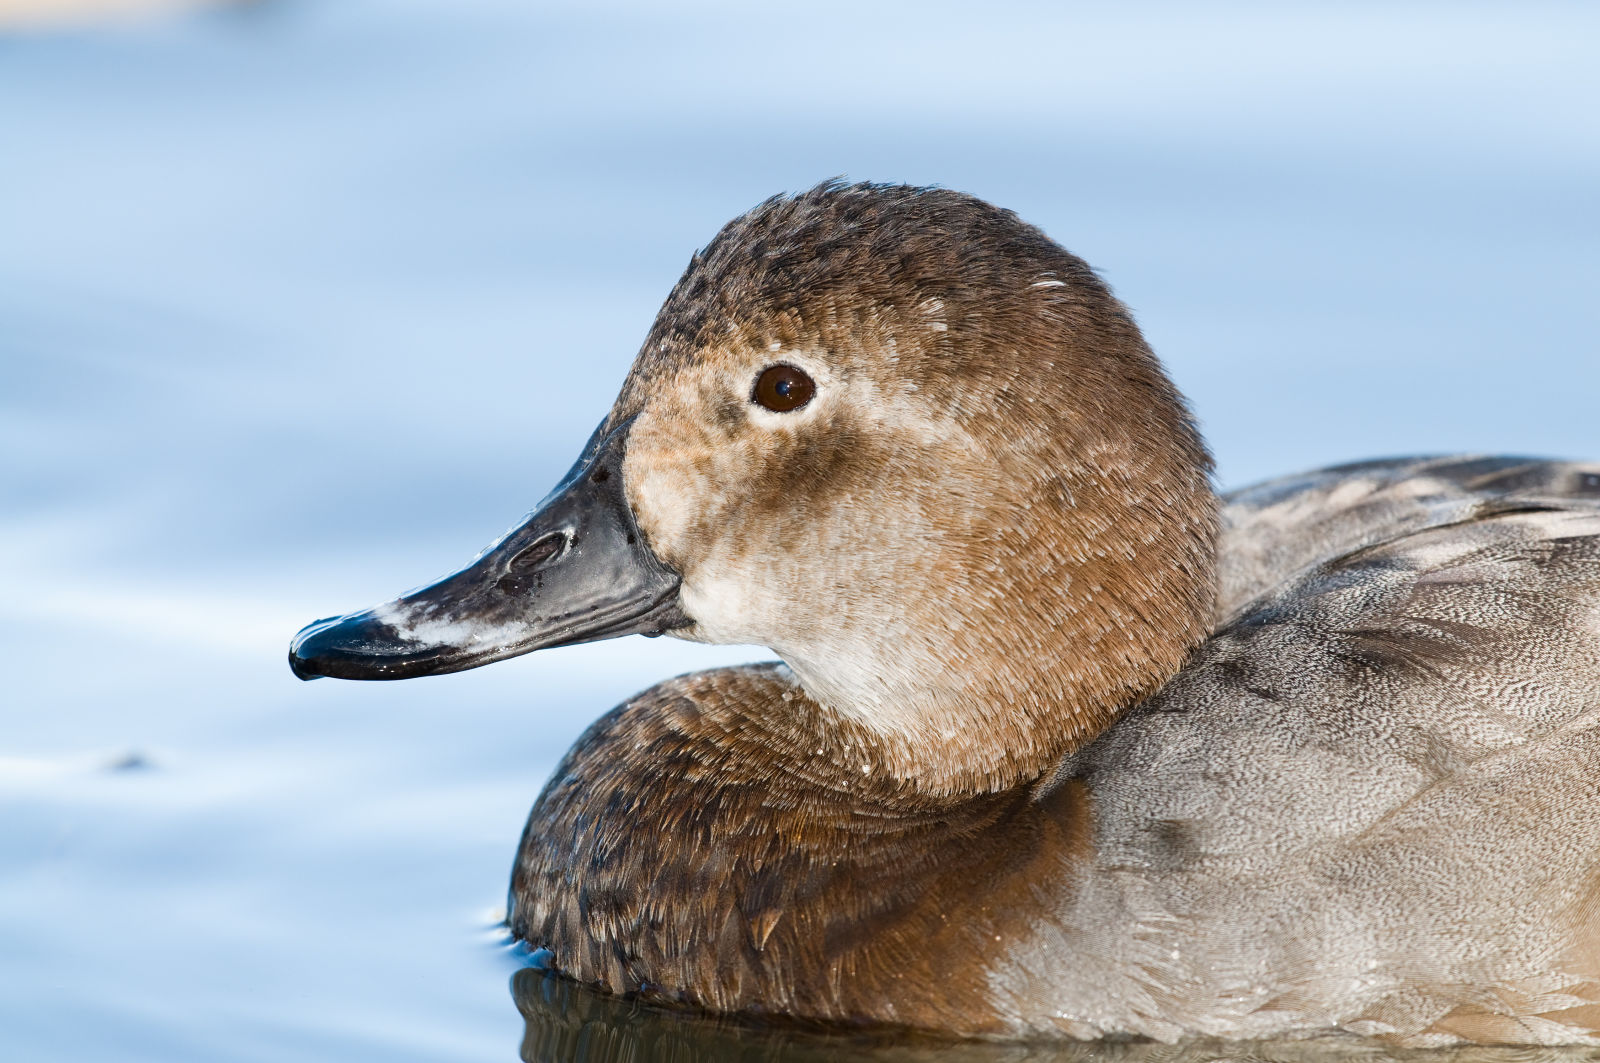 Close up: European Winter Waterfowl - Part 1 - Common Pochard (Aythya ferina) by Leander Khil